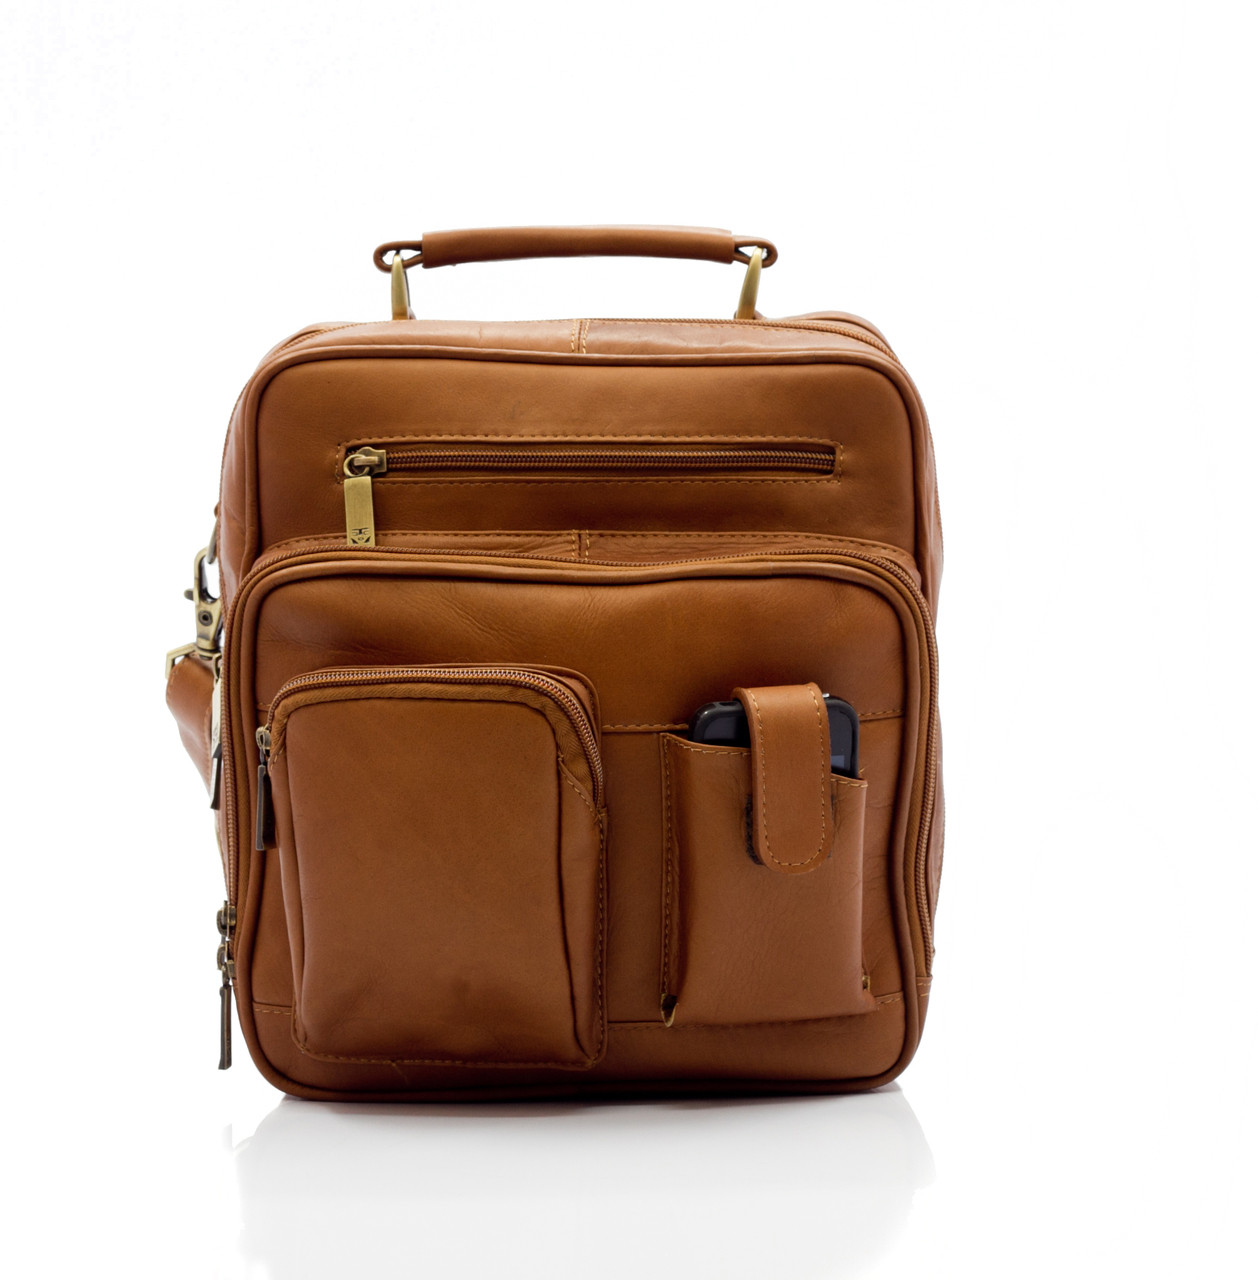 Muiska - Carlos - Men's everyday bag features four convenient front pockets